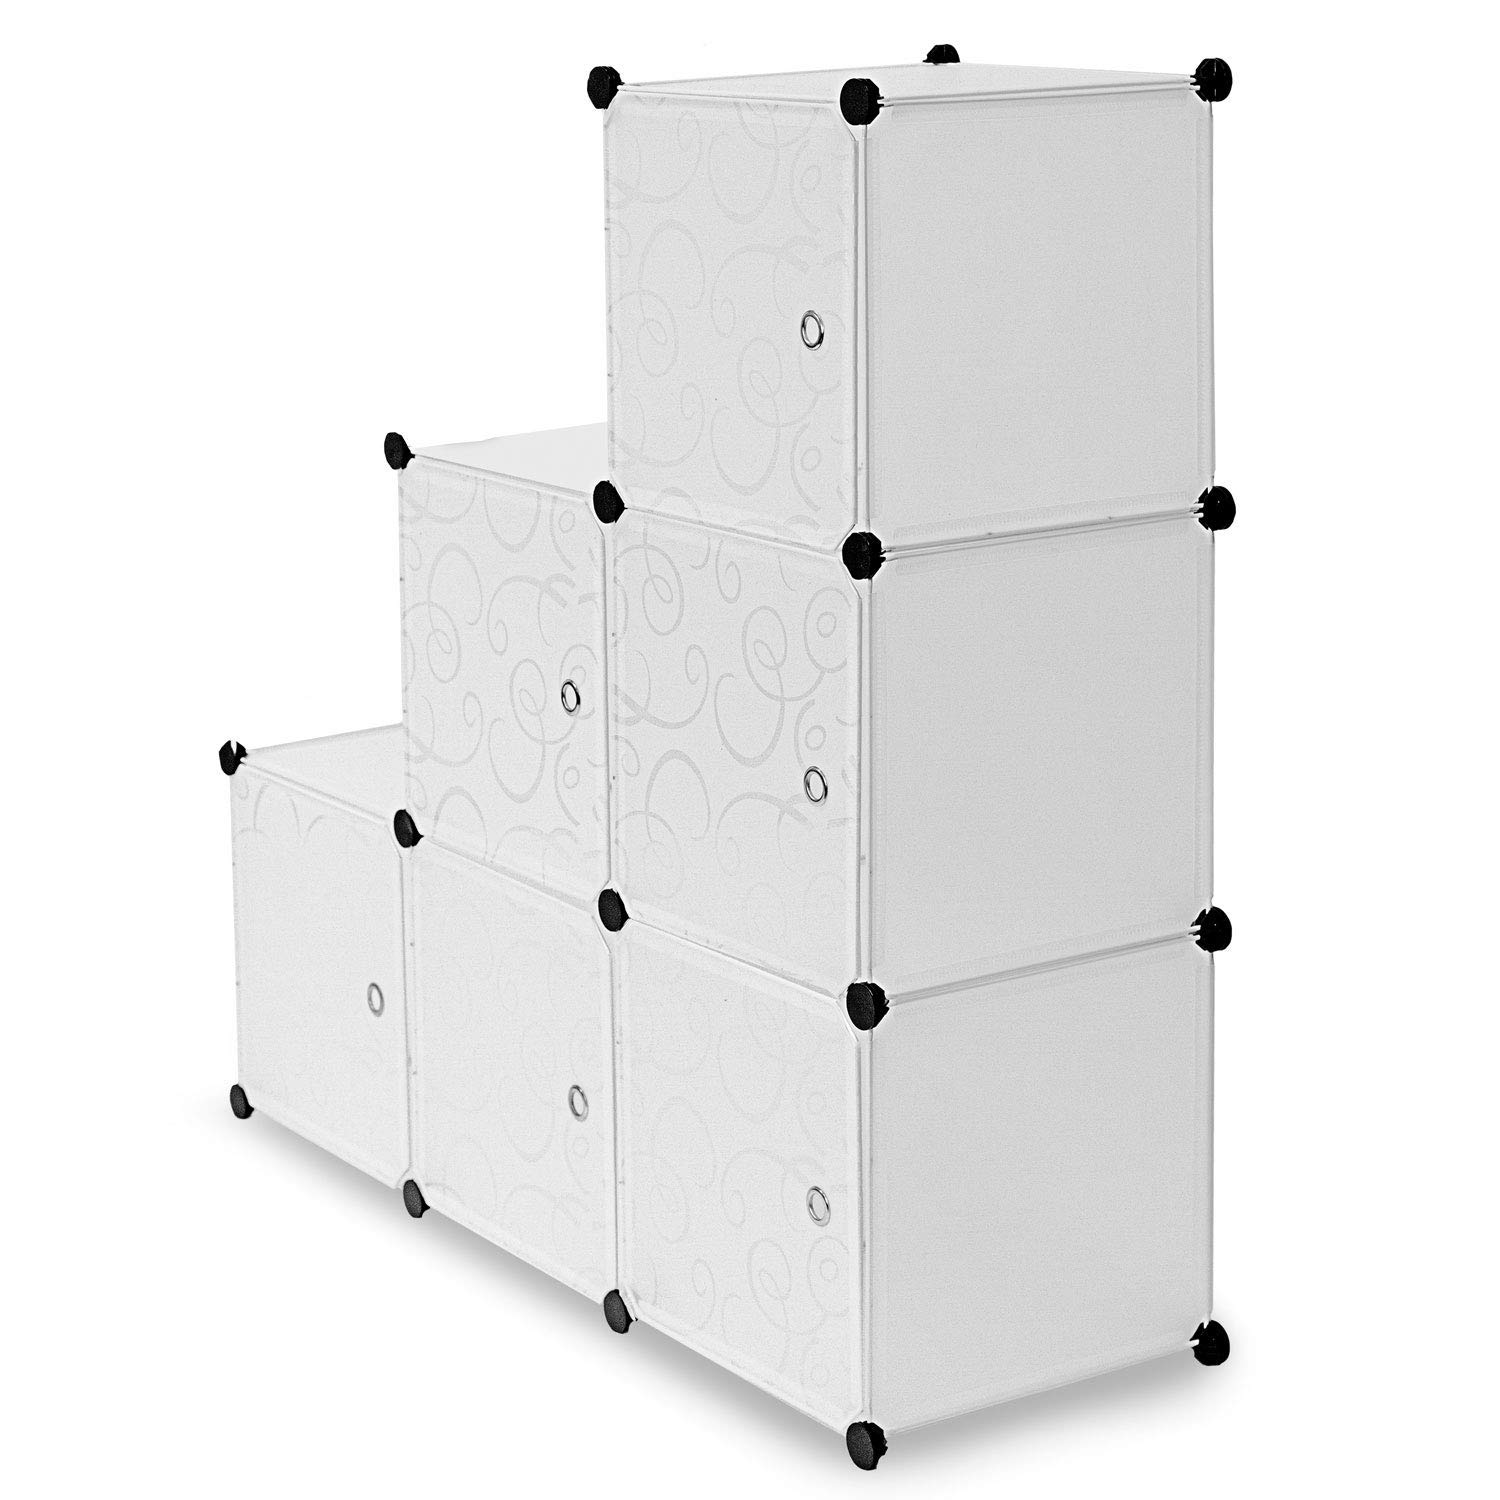 Work-It! Cube Storage Organizer - 6 Cubes | Stackable Portable Closet Organizer Shelves, Modular Cabinet with Doors and Hammer, Translucent White, 42'' W x 28'' H x 14'' D by Work-It!